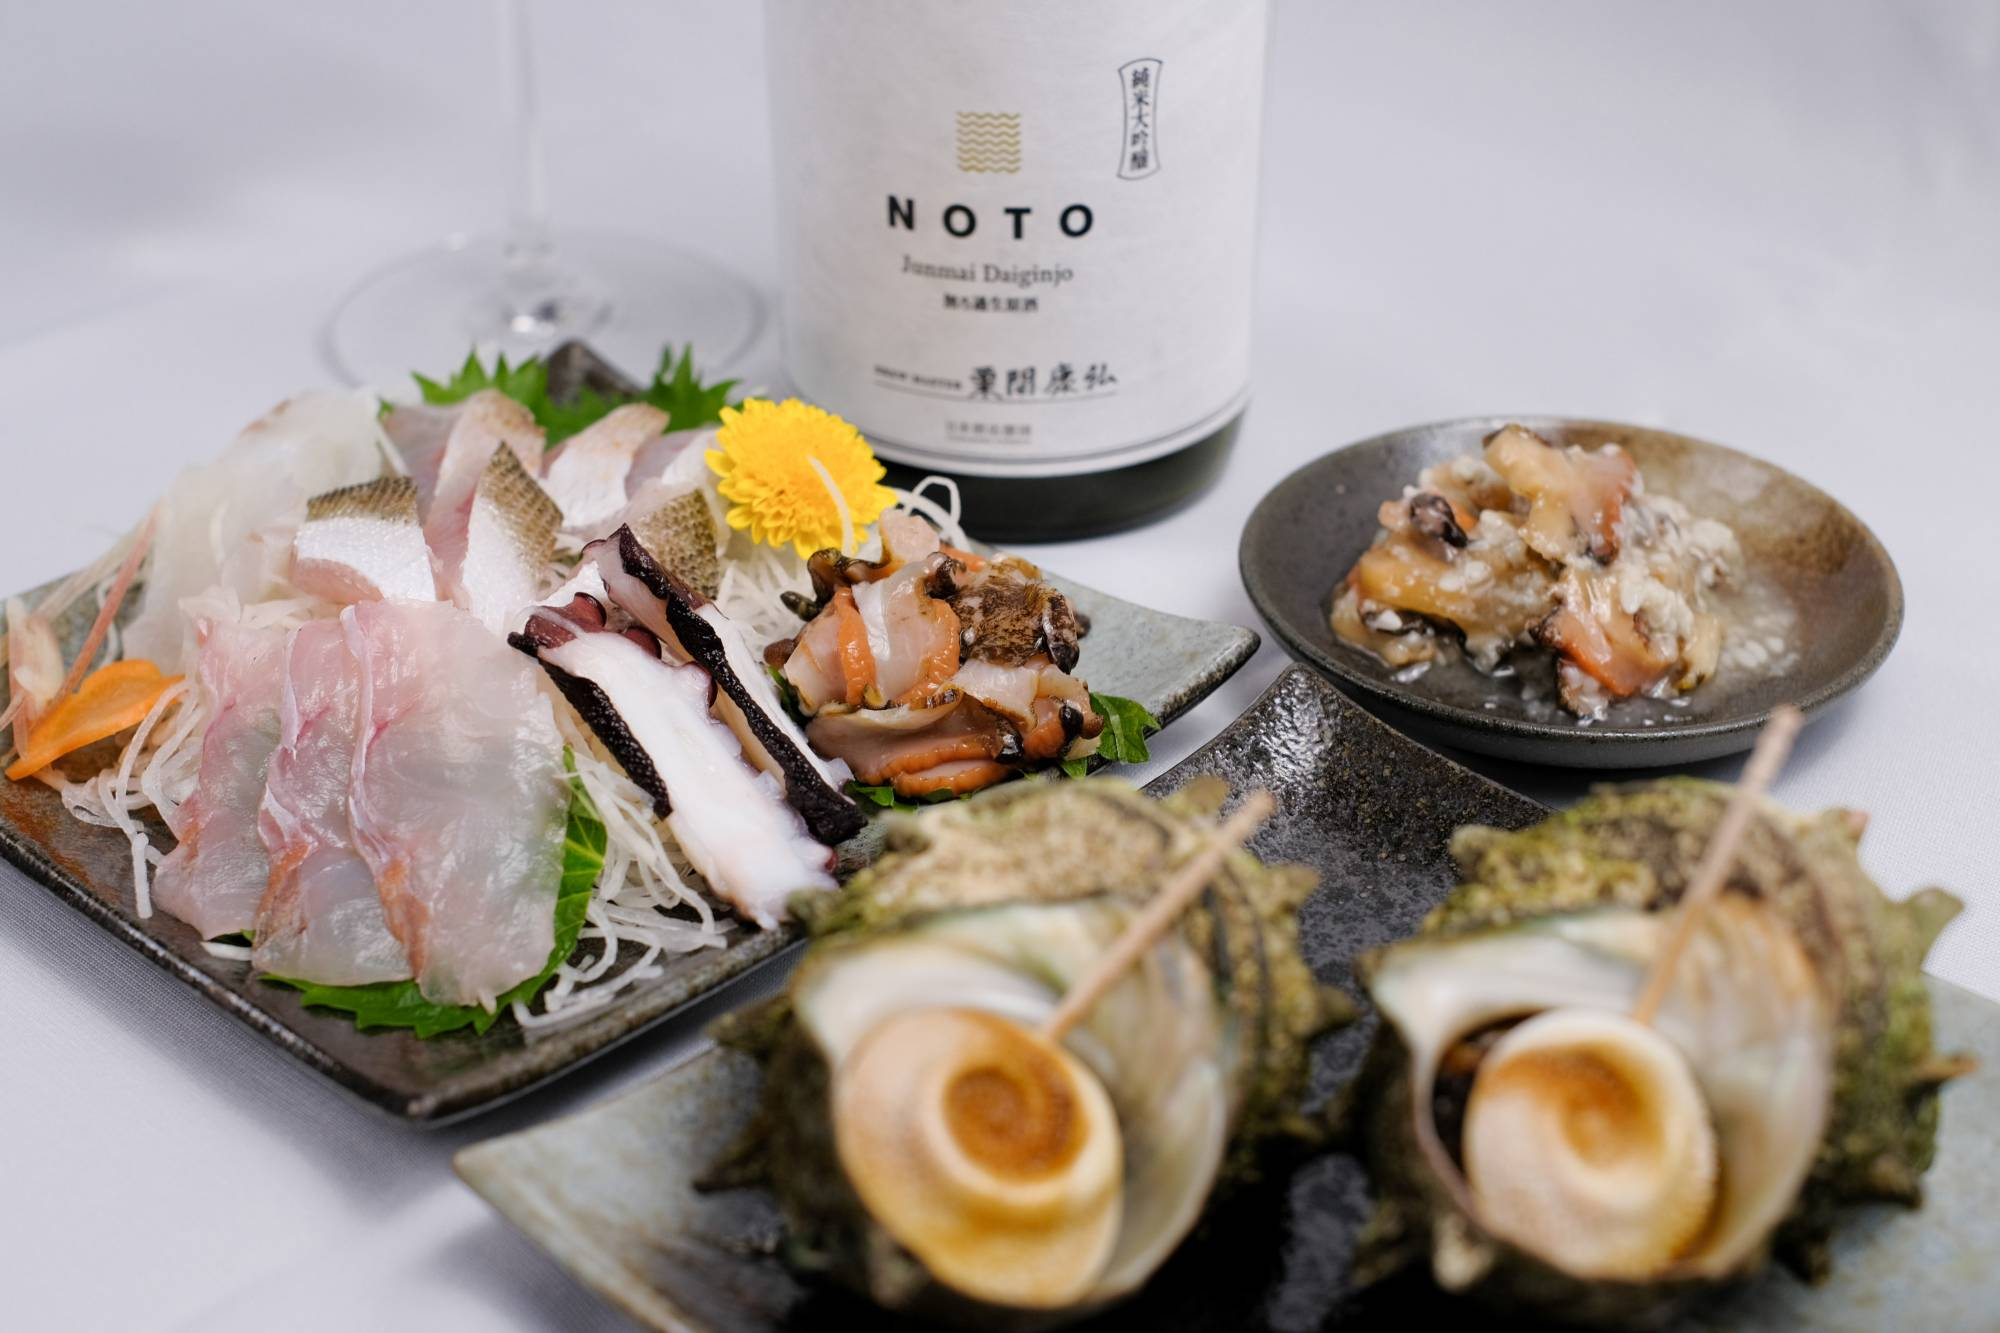 Nihonshu Oendan partners with regional producers to create food-and-sake pairing kits; August's offering comes with the brand's bright and juicy Noto sake from Ishikawa Prefecture, along with sazae (turban shell) prepared three ways and an assorted platter of five kinds of fresh fish from the Noto Peninsula.   NIHONSHU OENDAN INC, KOHEI ISHII